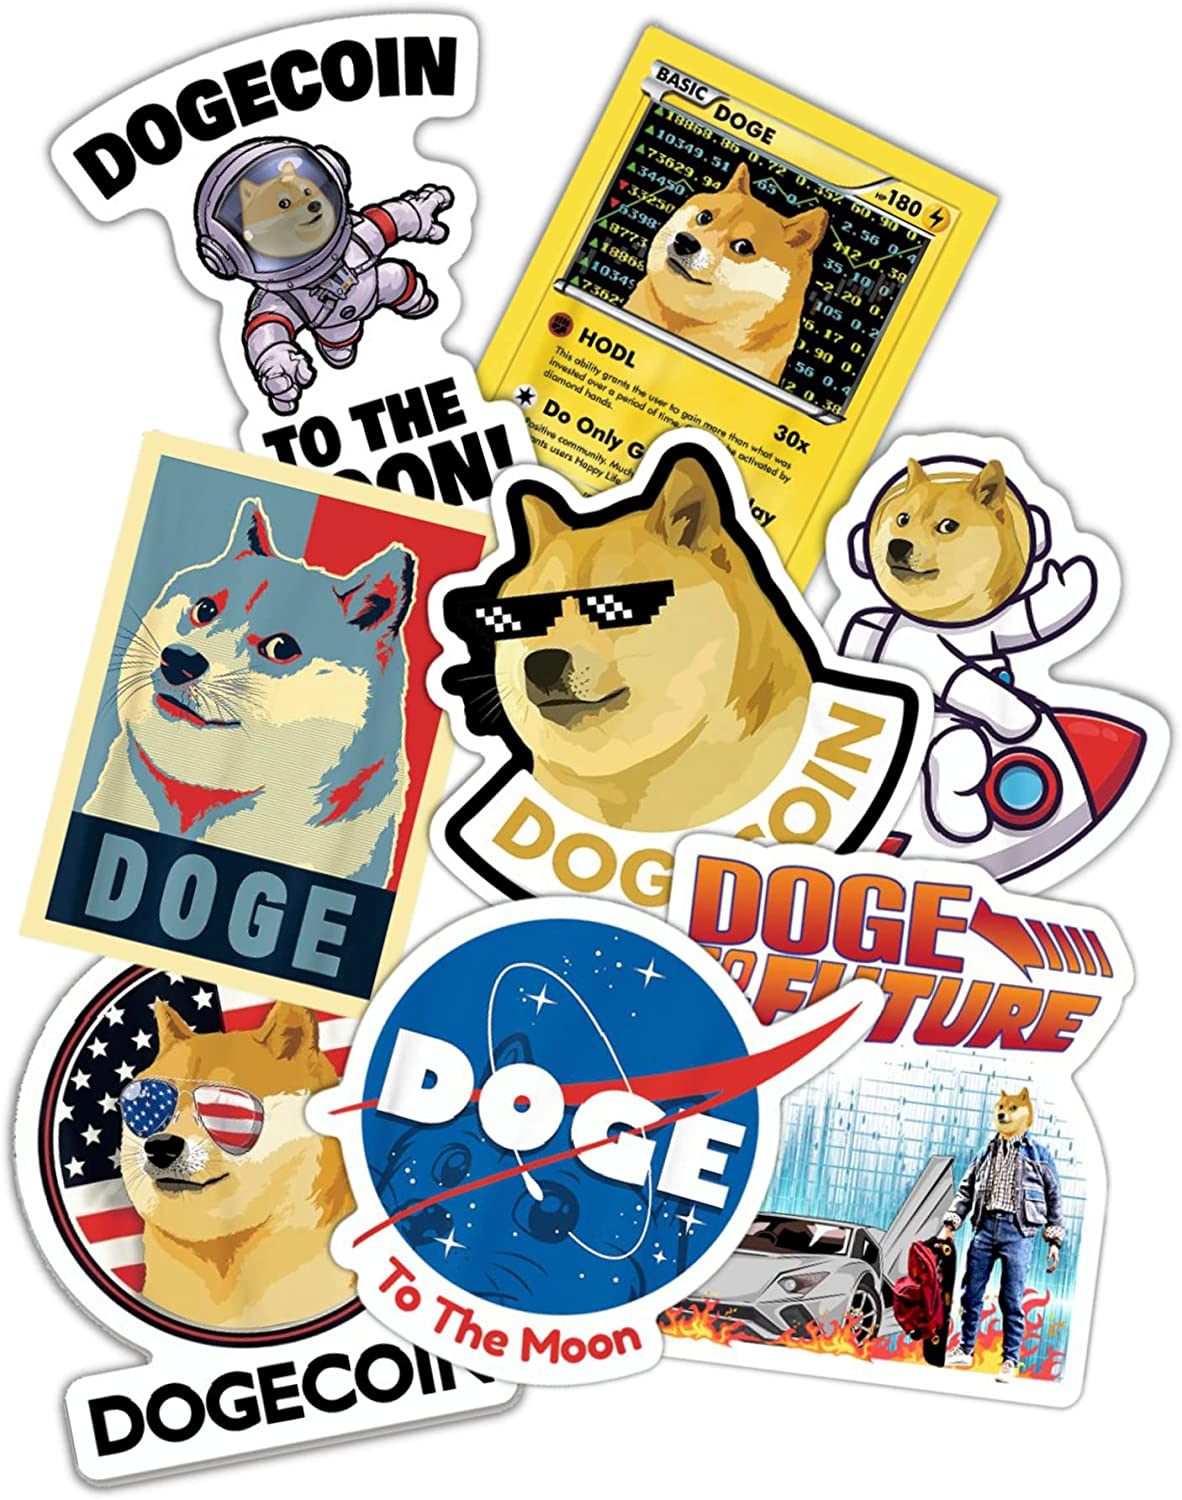 Dogecoin Sticker (Pack of 8) Premium Vinyl Decal for Fans of Dogecoin, Doge, Cryptocurrency, Crypto, Blockchain, Bitcoin, Ethereum, WSB Wallstreetbets, GME Gamestop, Stonks, etc.